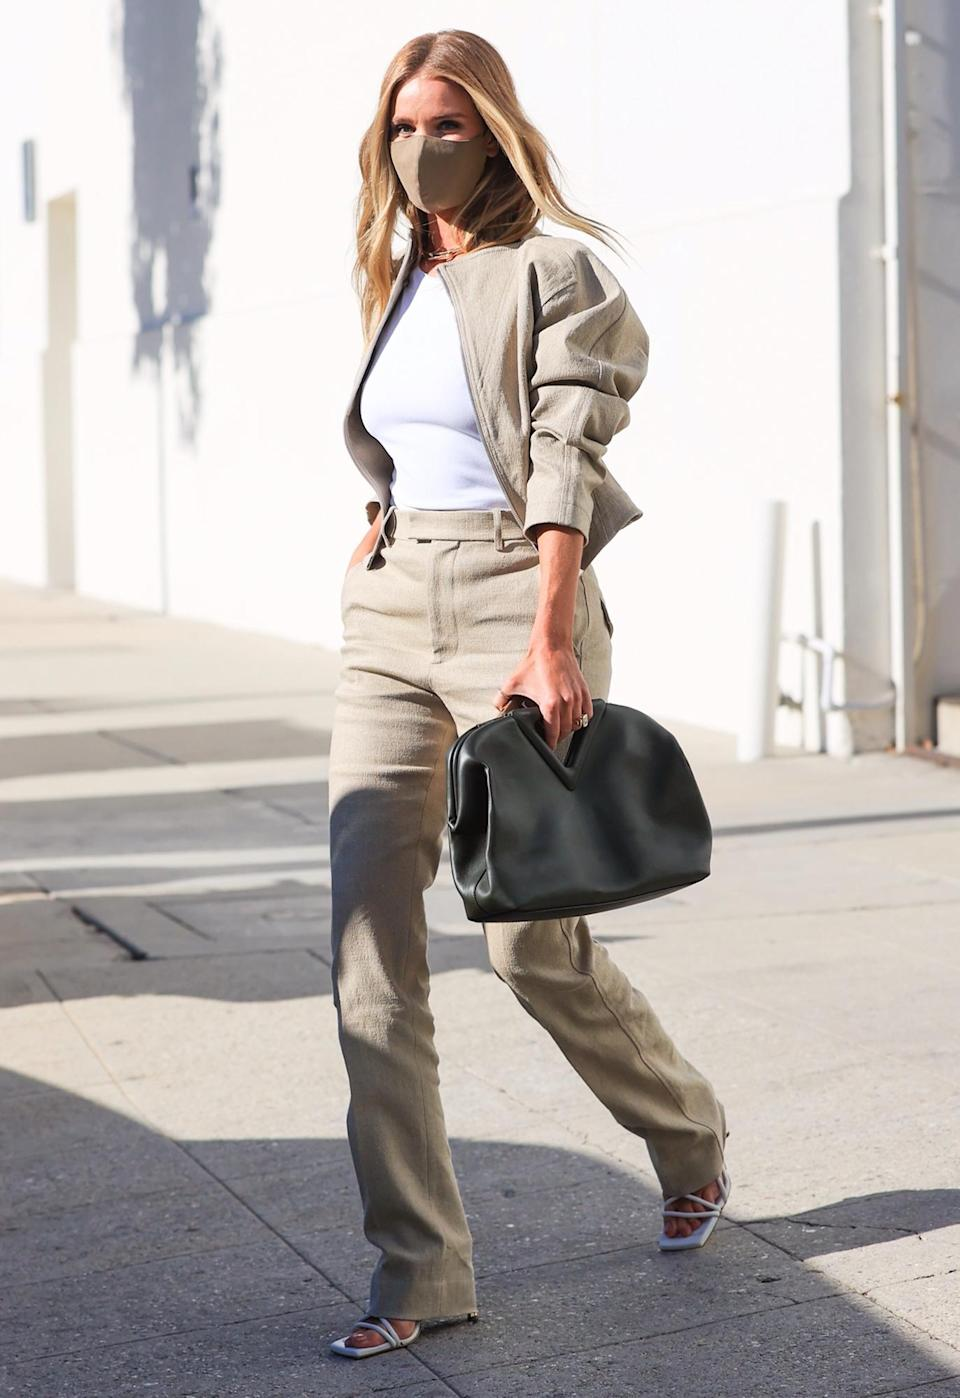 <p>Rosie Huntington-Whiteley looks every inch the model while leaving Milk Studios in L.A. on Wednesday.</p>